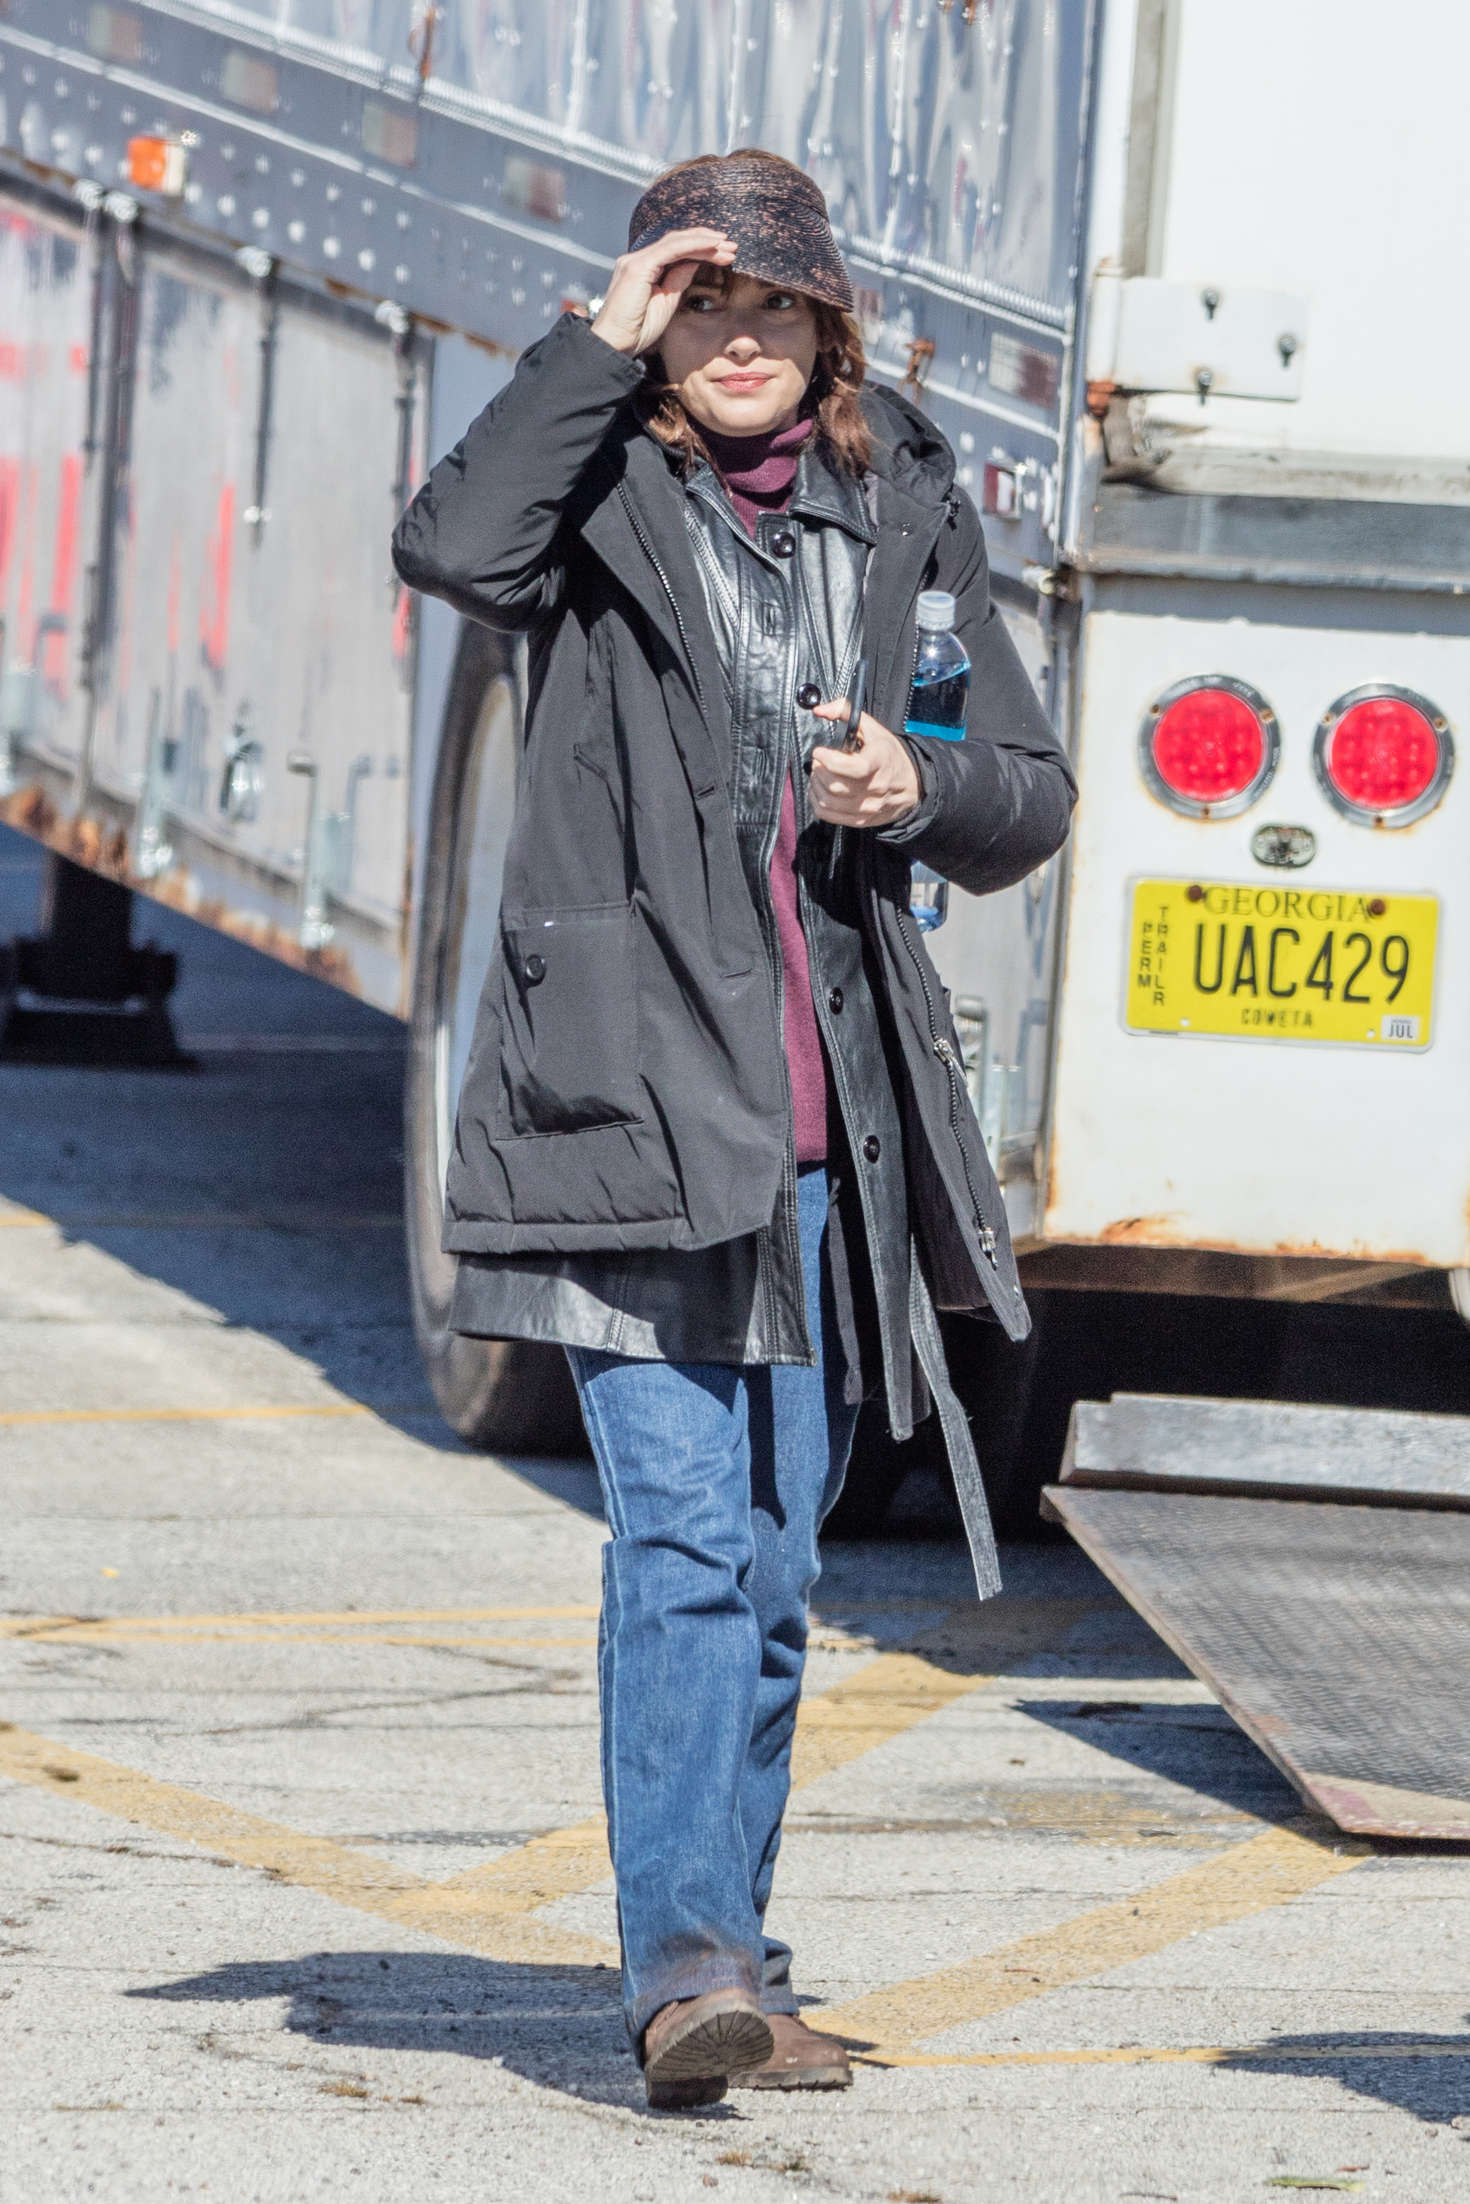 Winona Ryder on the set of Stranger Things in Indiana